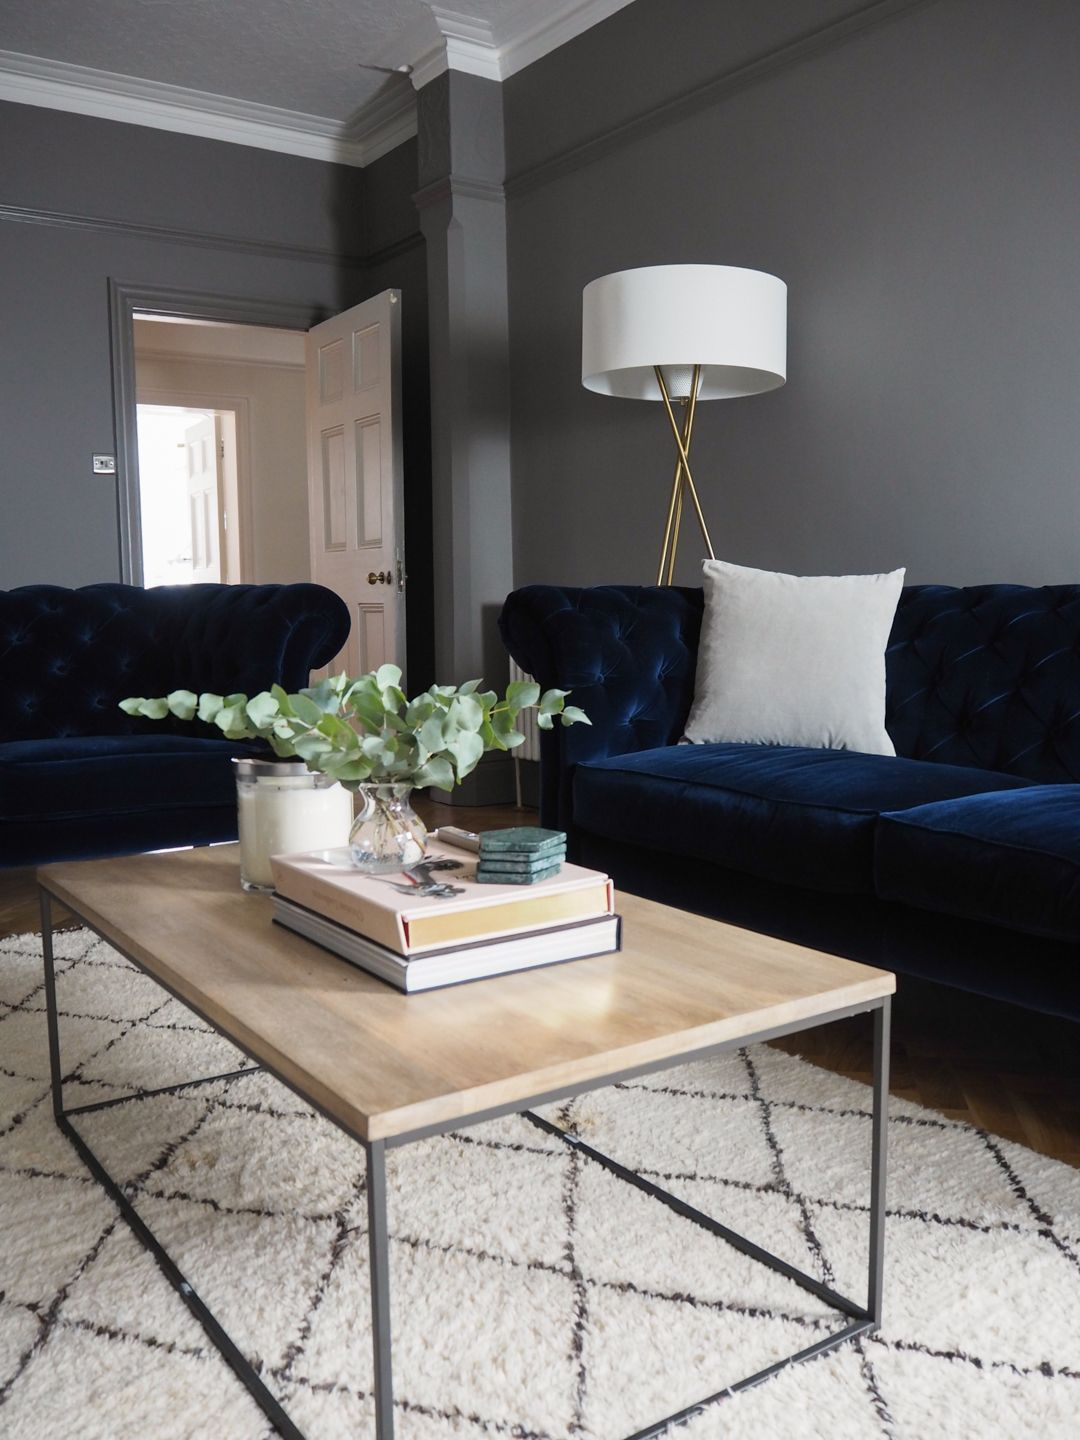 Our living room – adding the final touches with West Elm